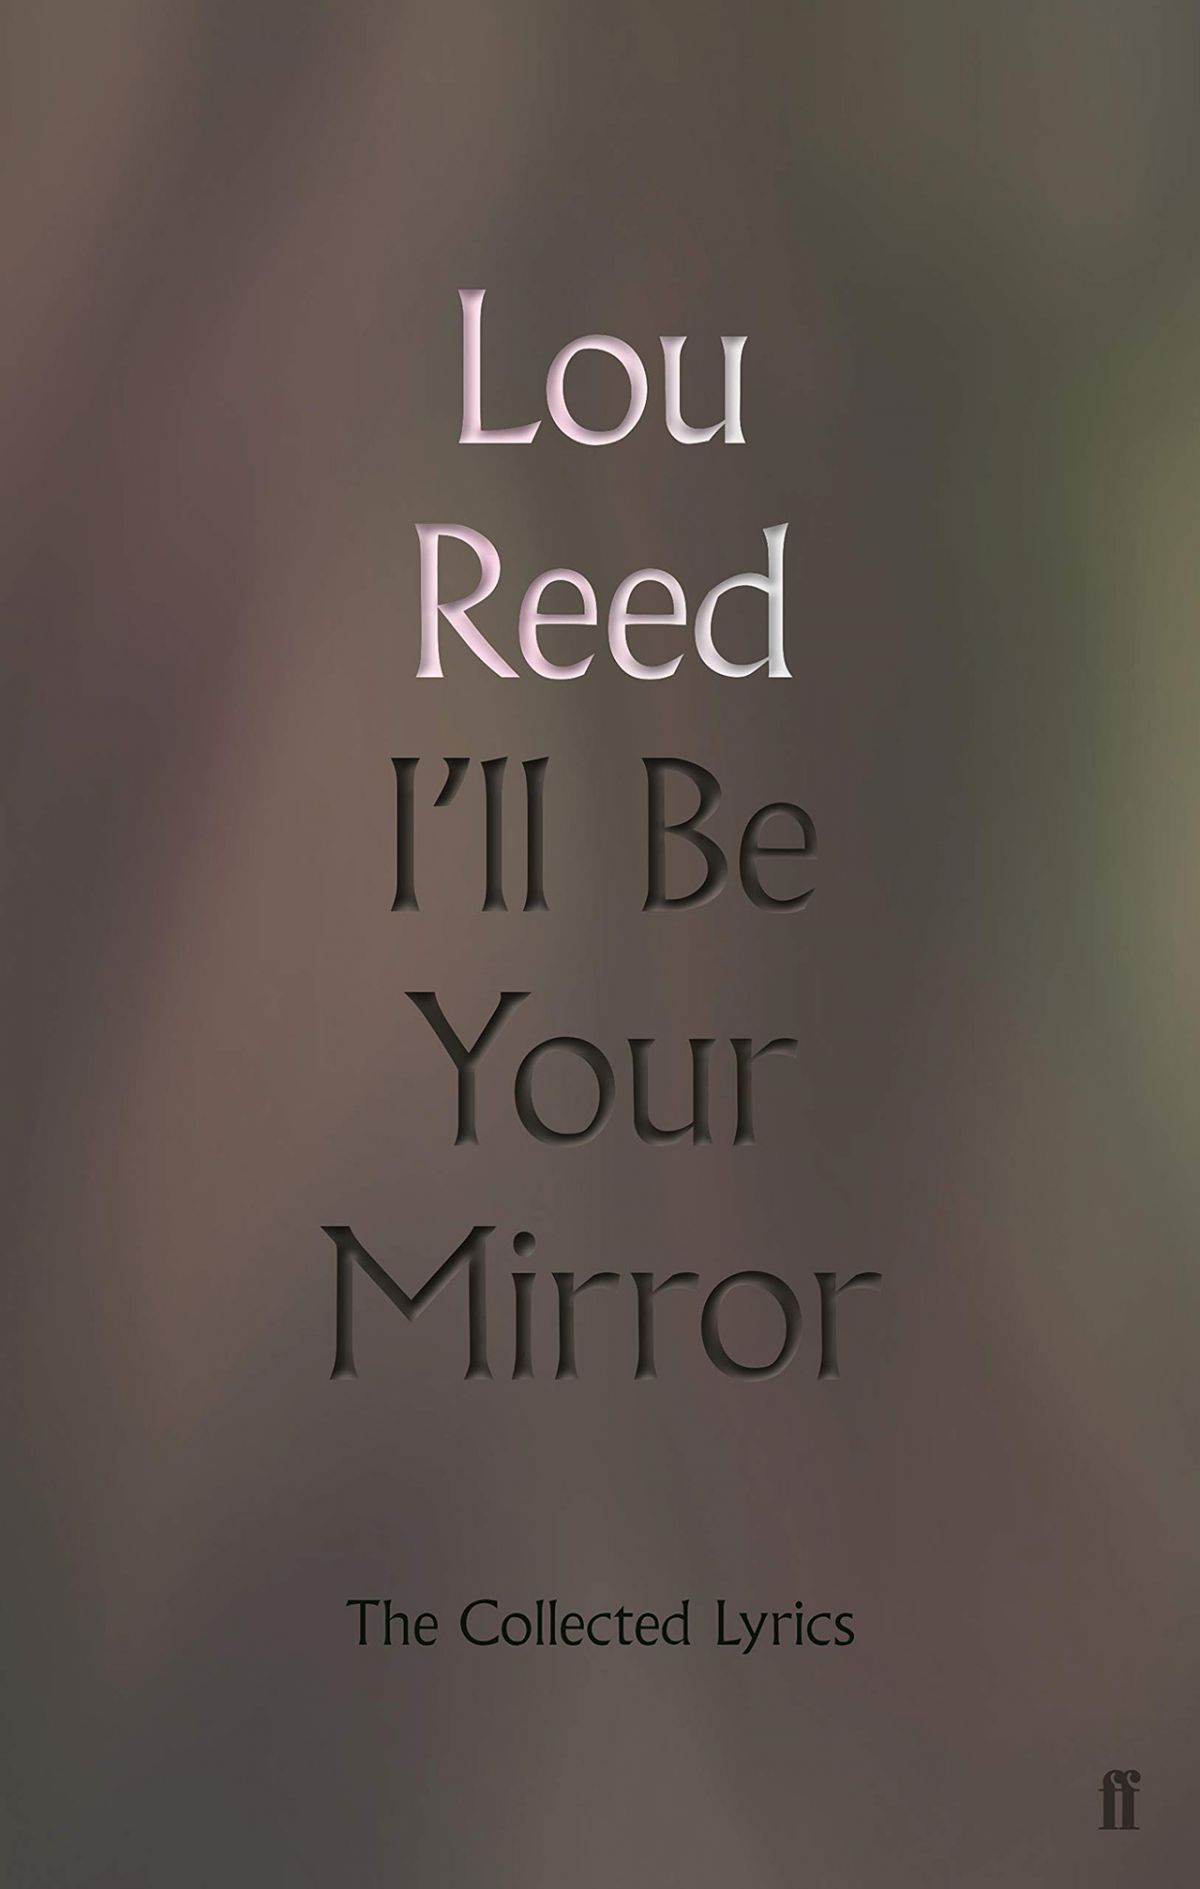 Lou Reed I'll Be Your Mirror The Collected Lyrics book cover